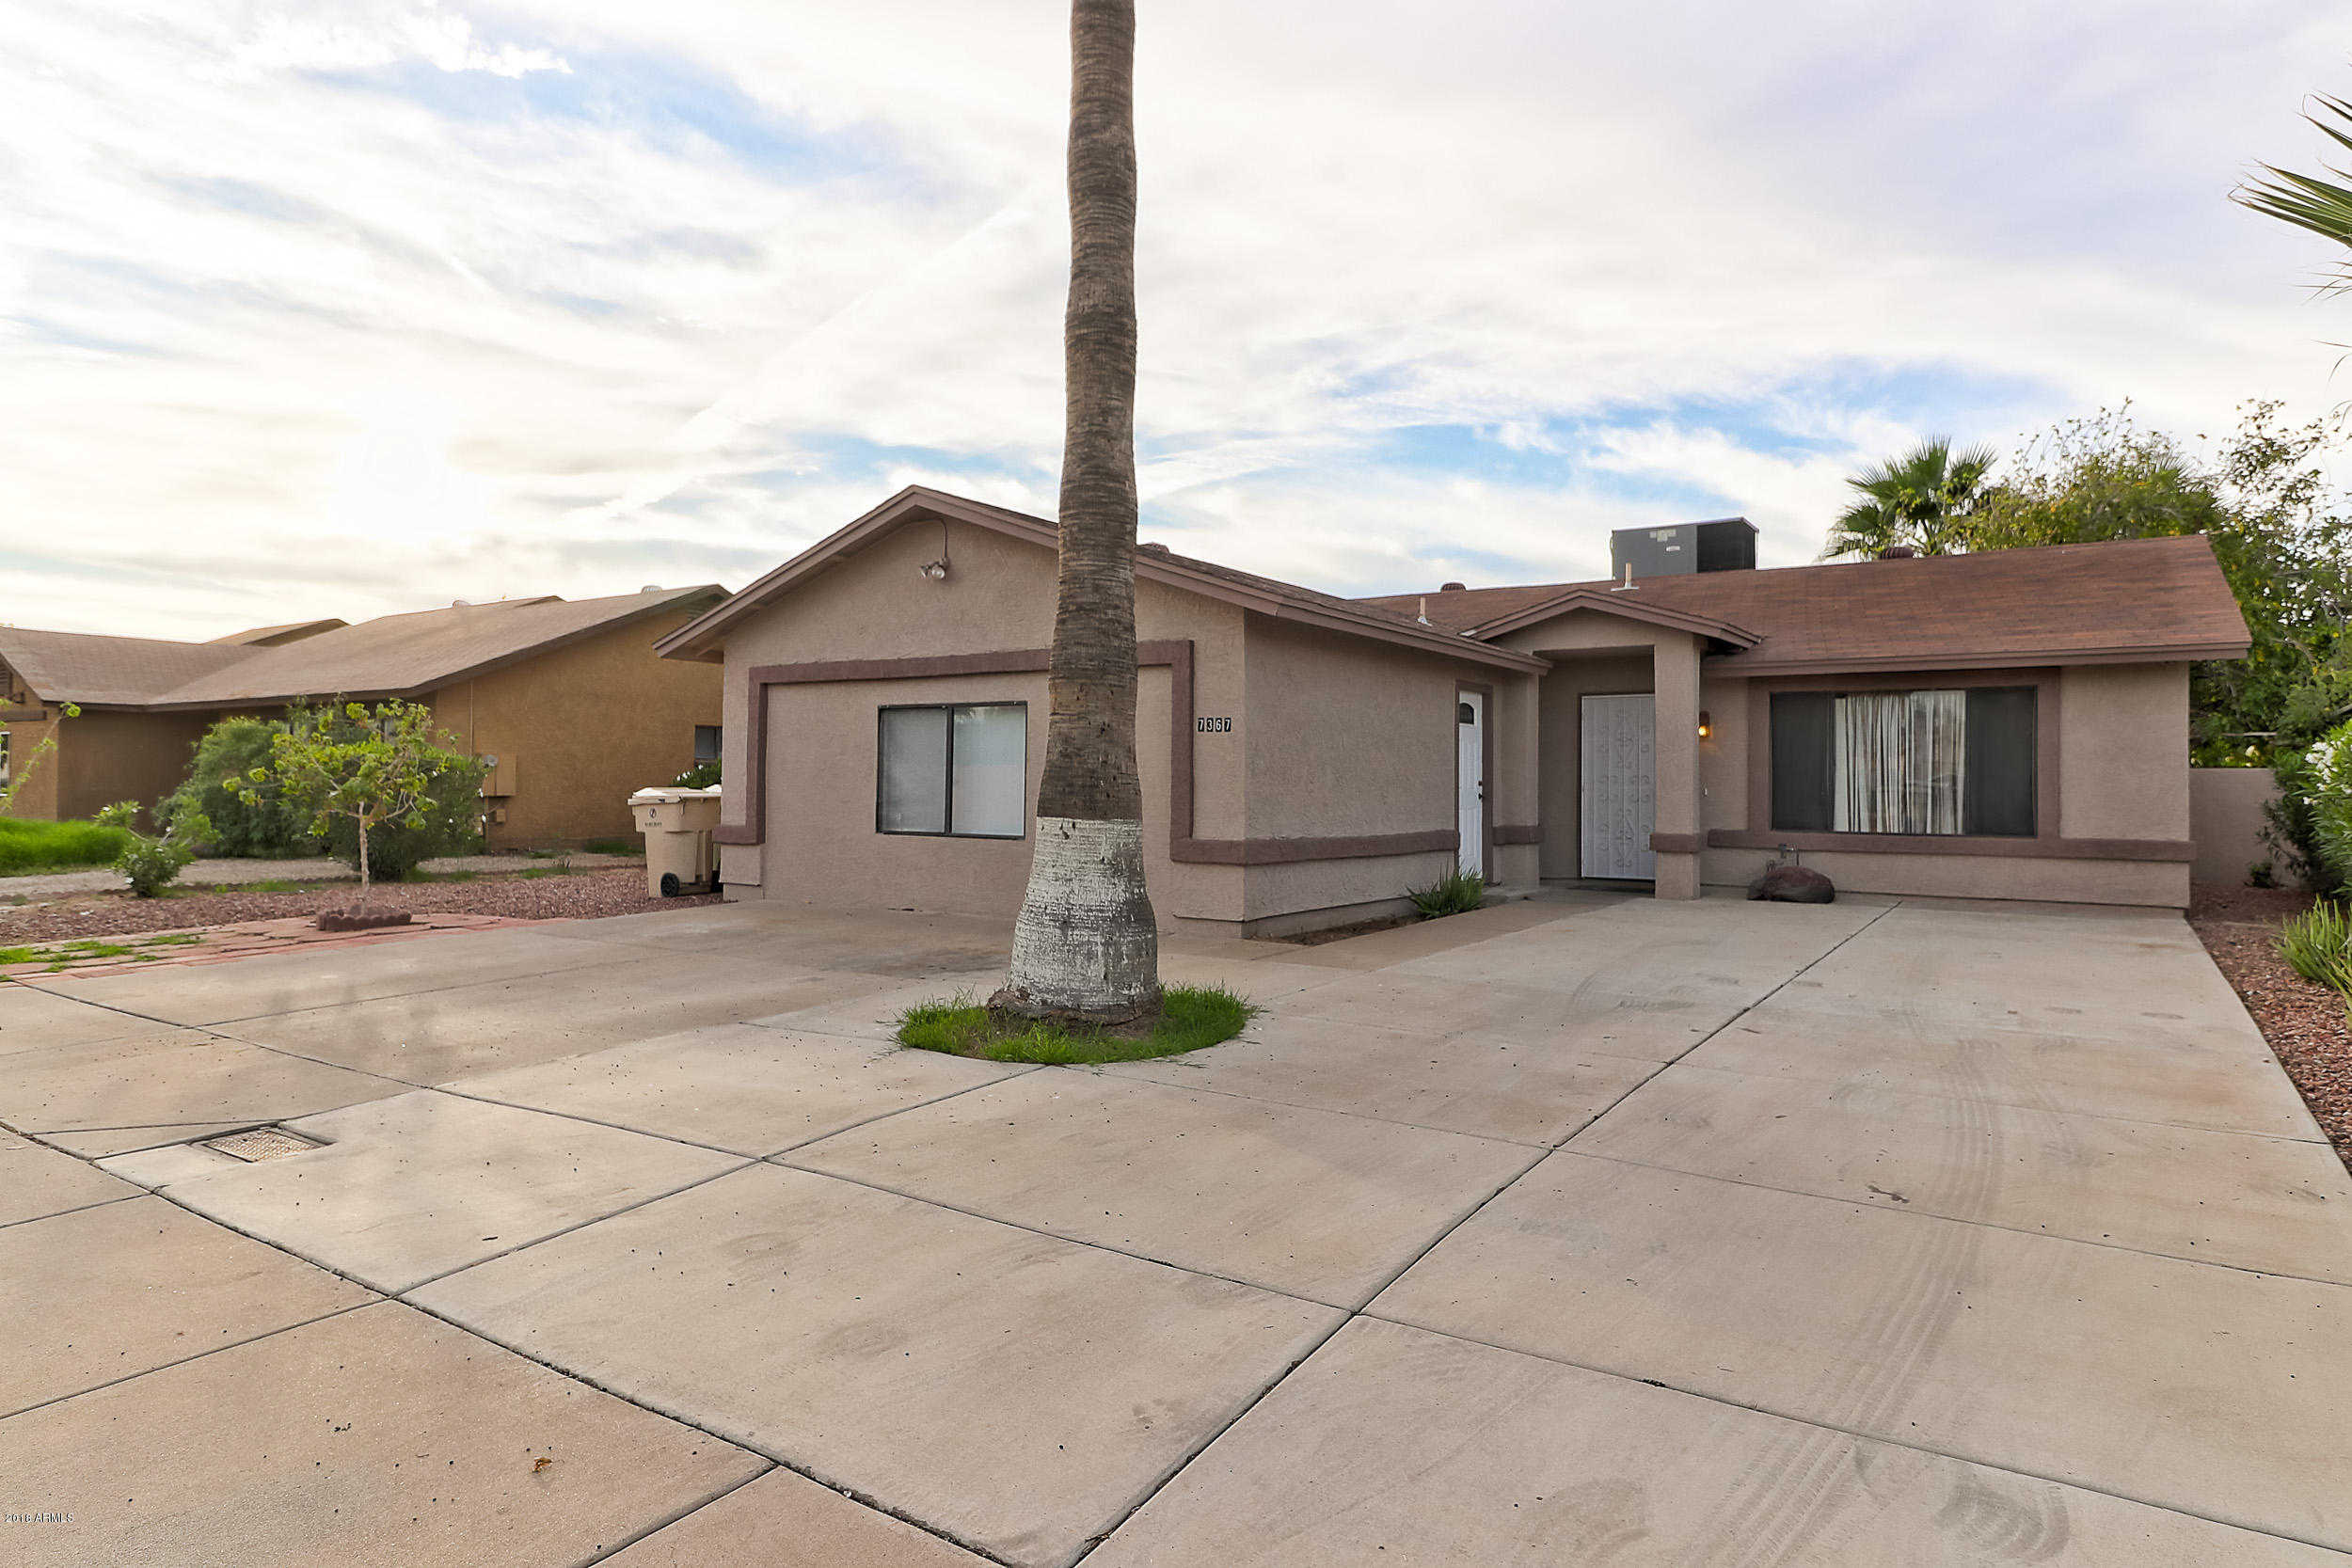 $215,000 - 4Br/2Ba - Home for Sale in La Fontana Heights Lot 1-162 Tr A, Glendale